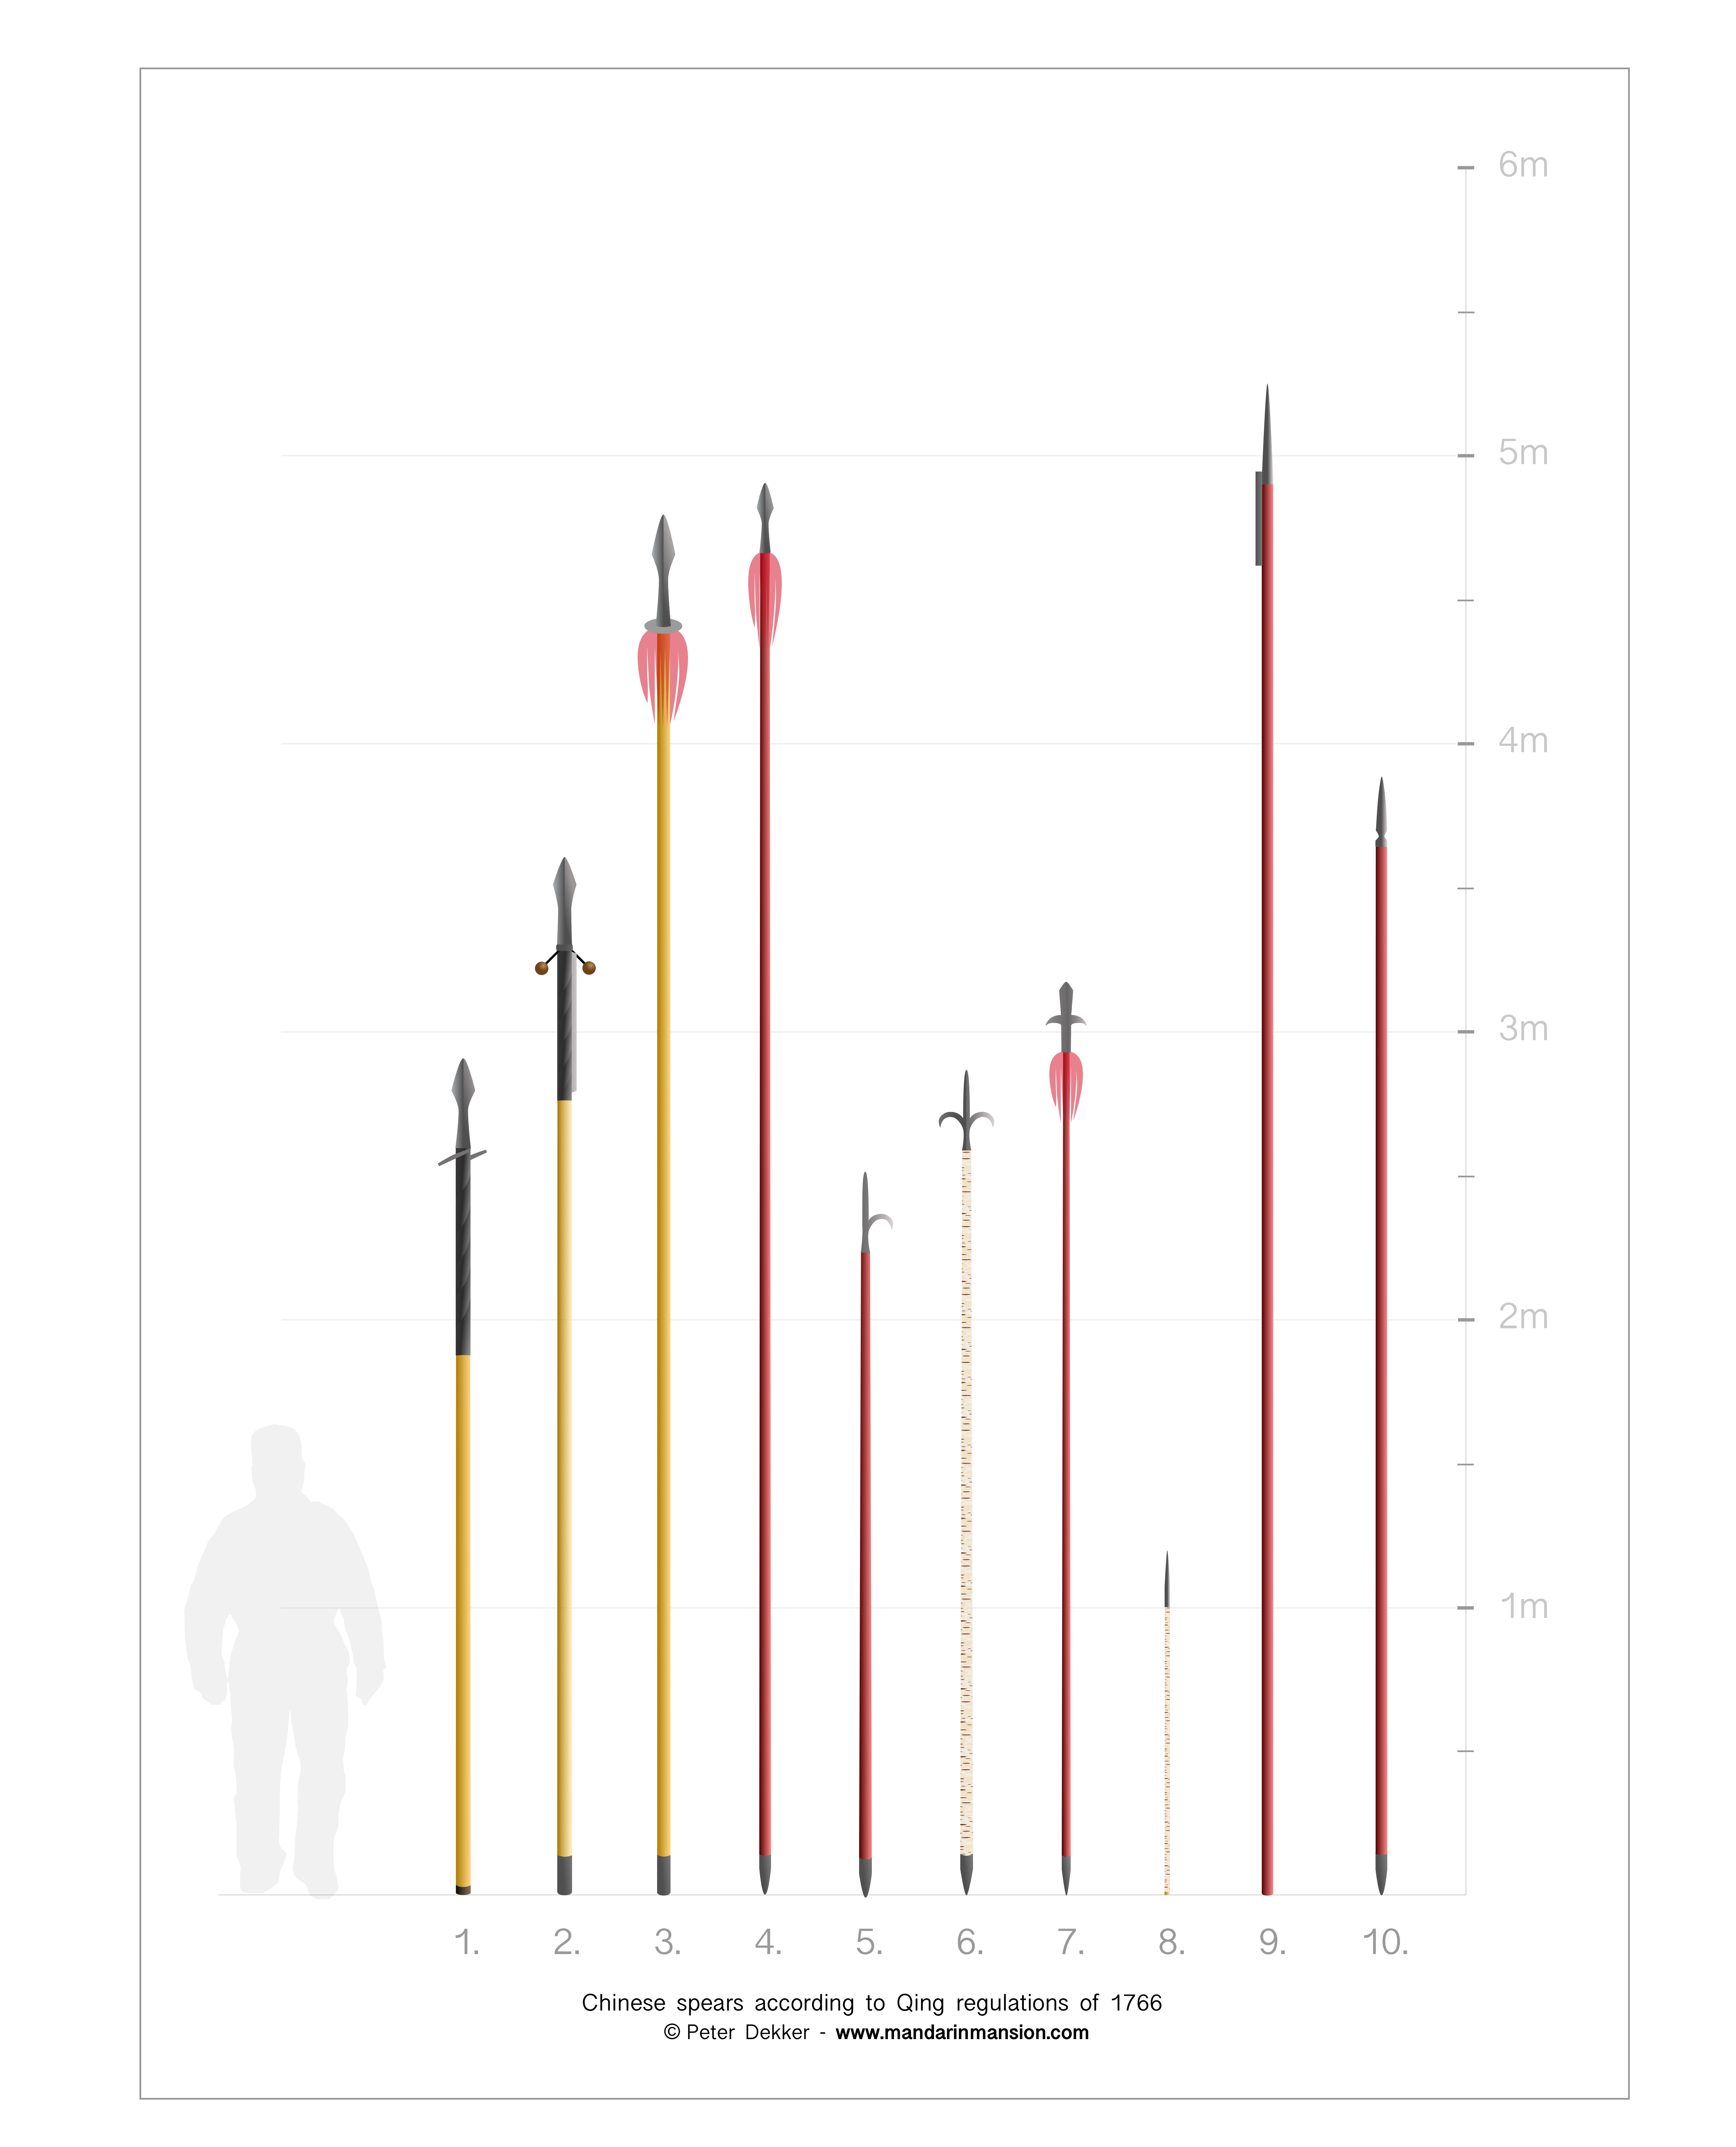 Visualization of spears of the Qing dynasty